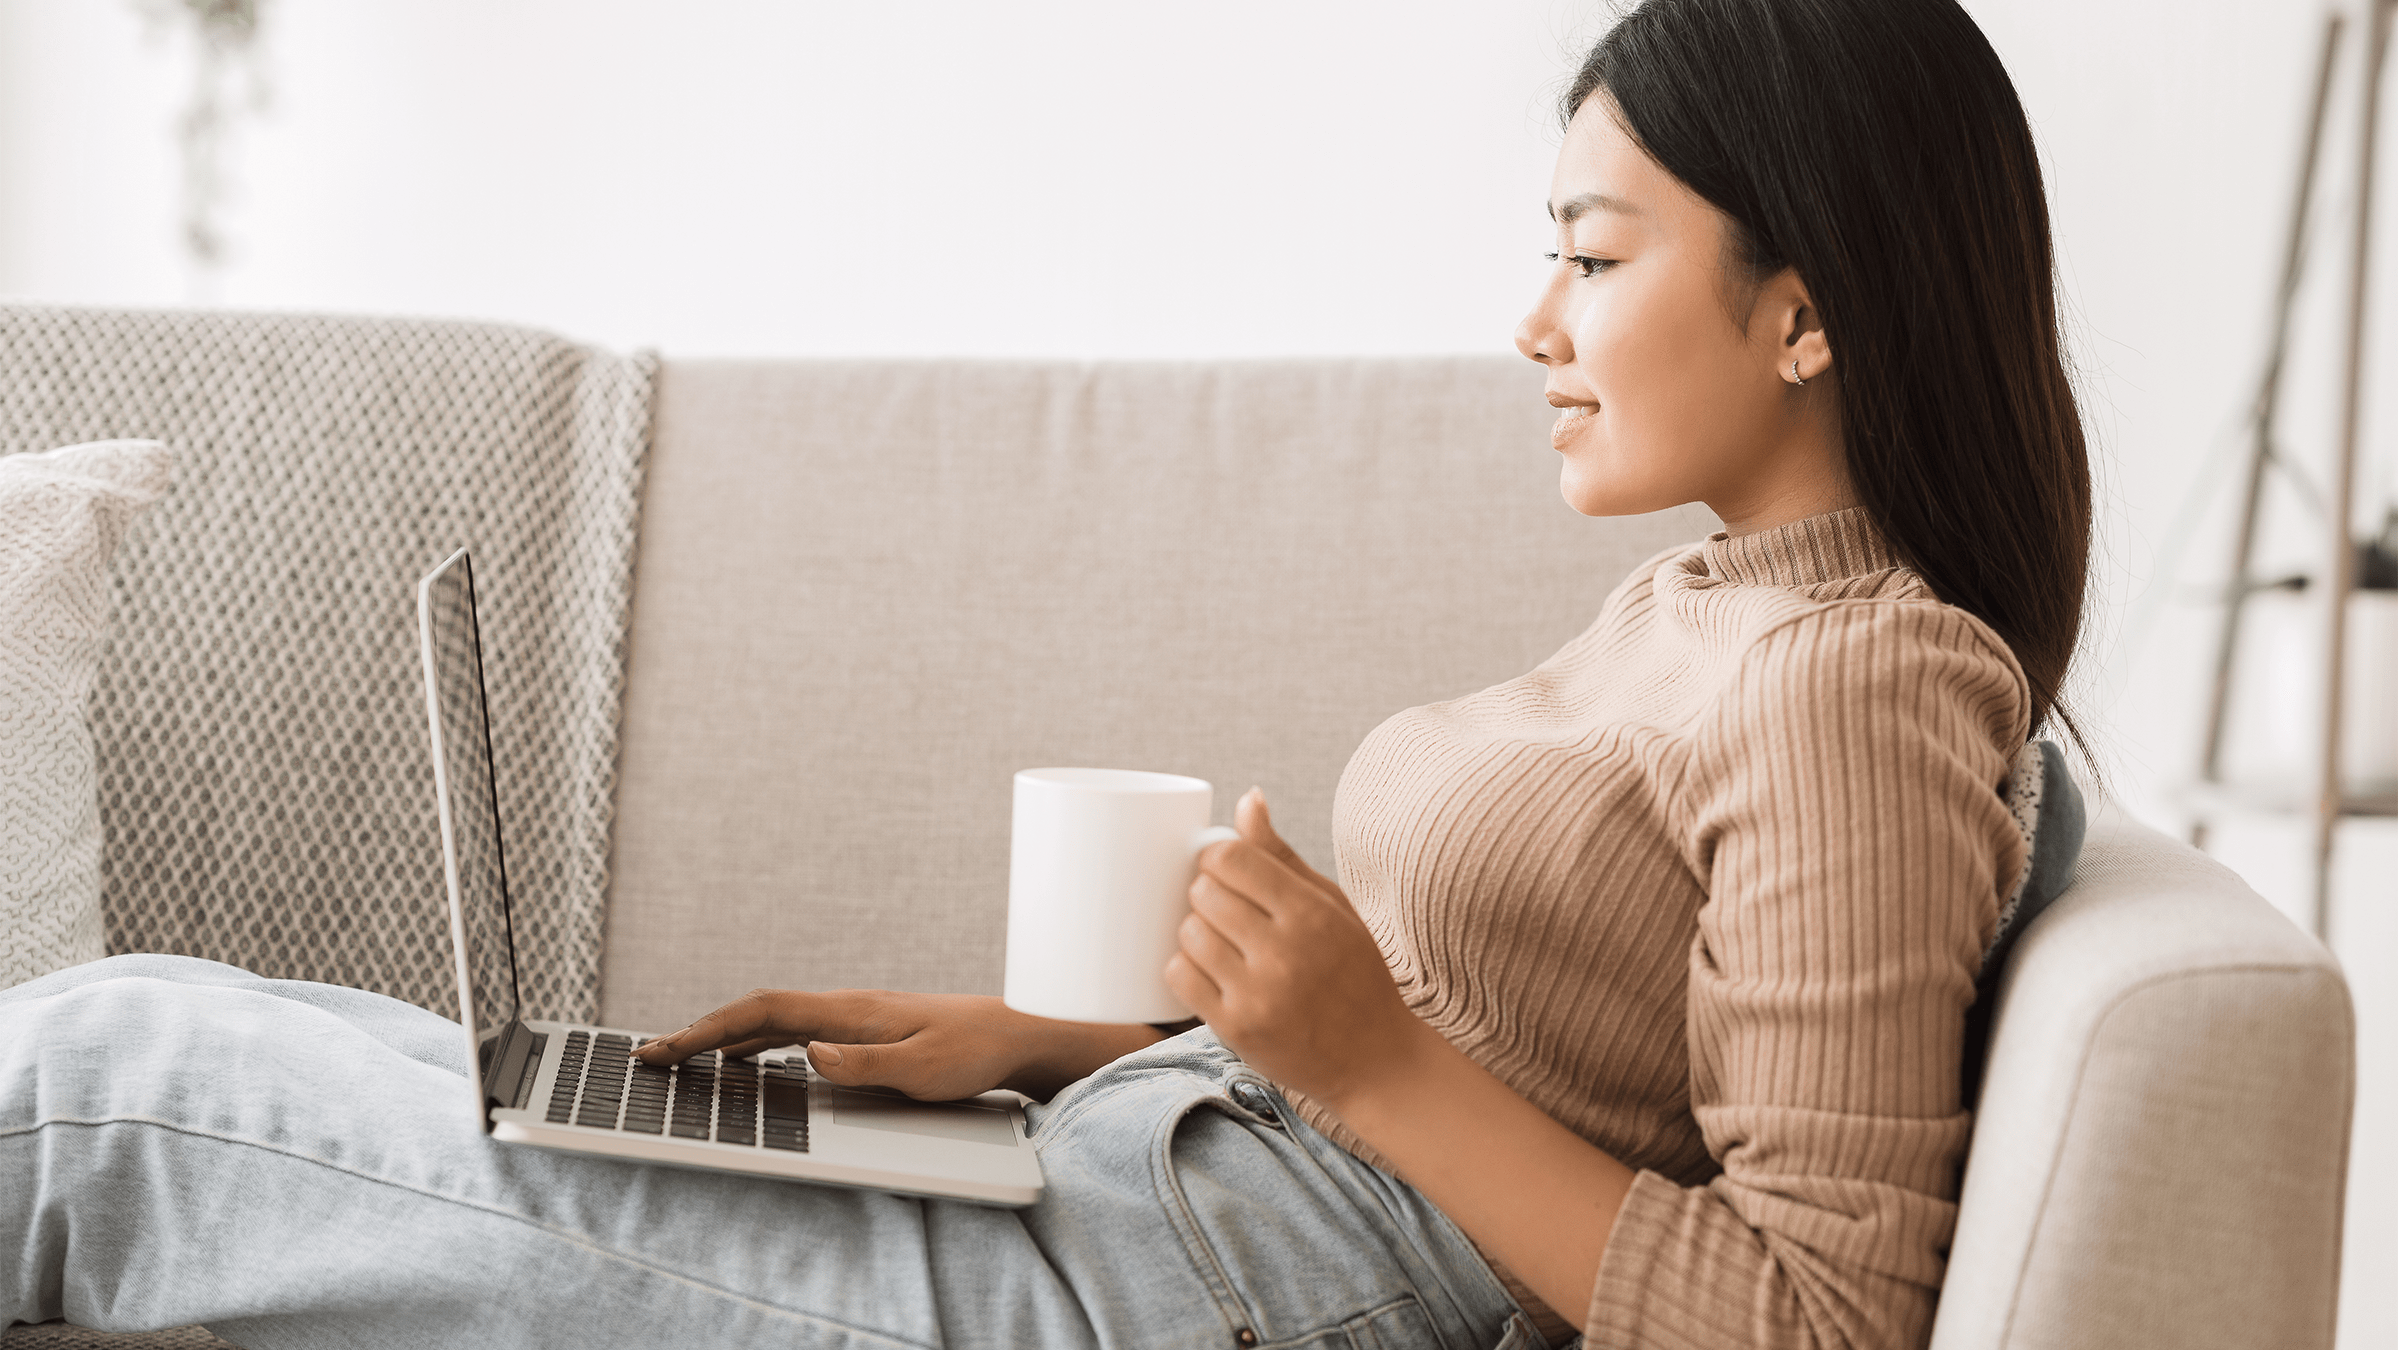 woman sitting down using social ecommerce